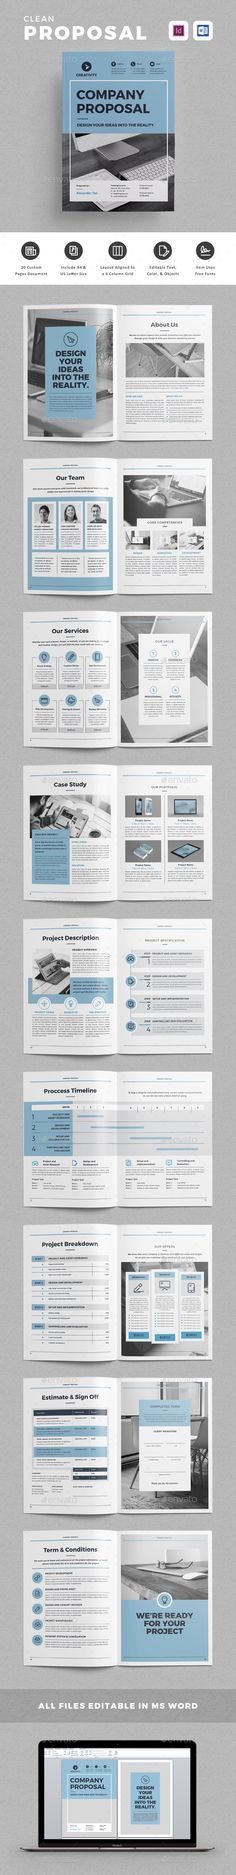 Proposal - project proposal word template